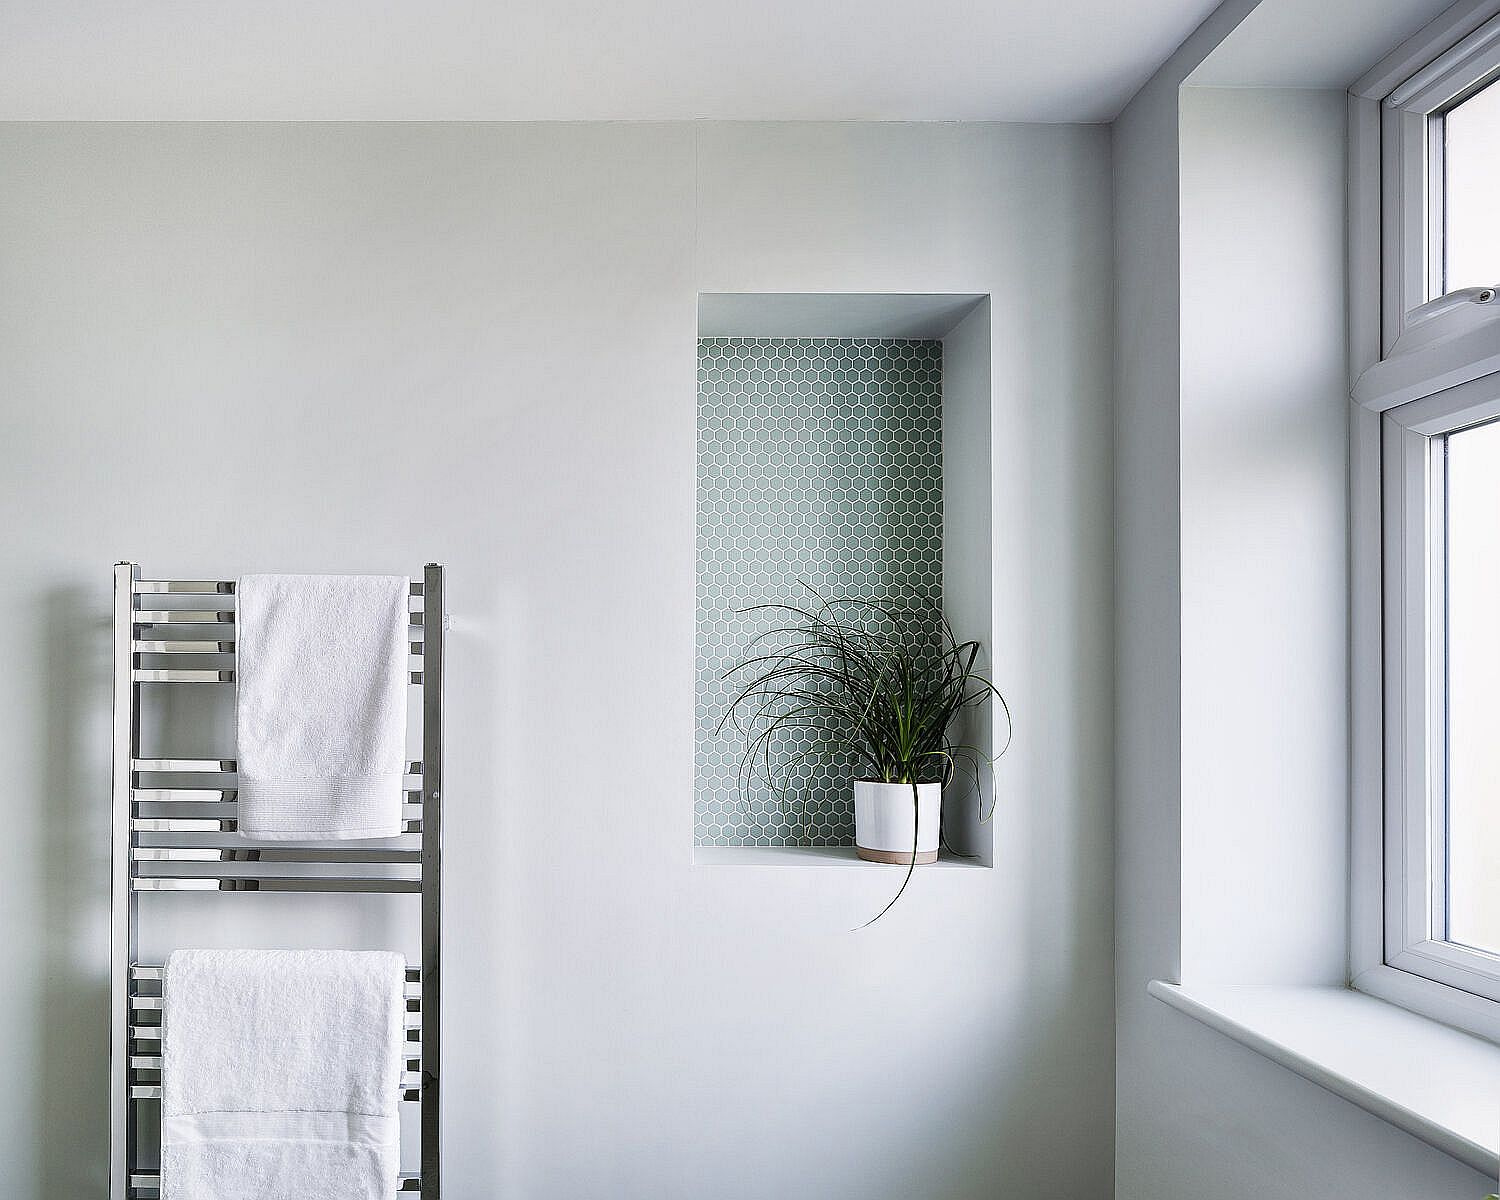 Little-accent-fetaure-for-the-white-modern-bathroom-with-penny-tiles-and-an-indoor-plant-66964